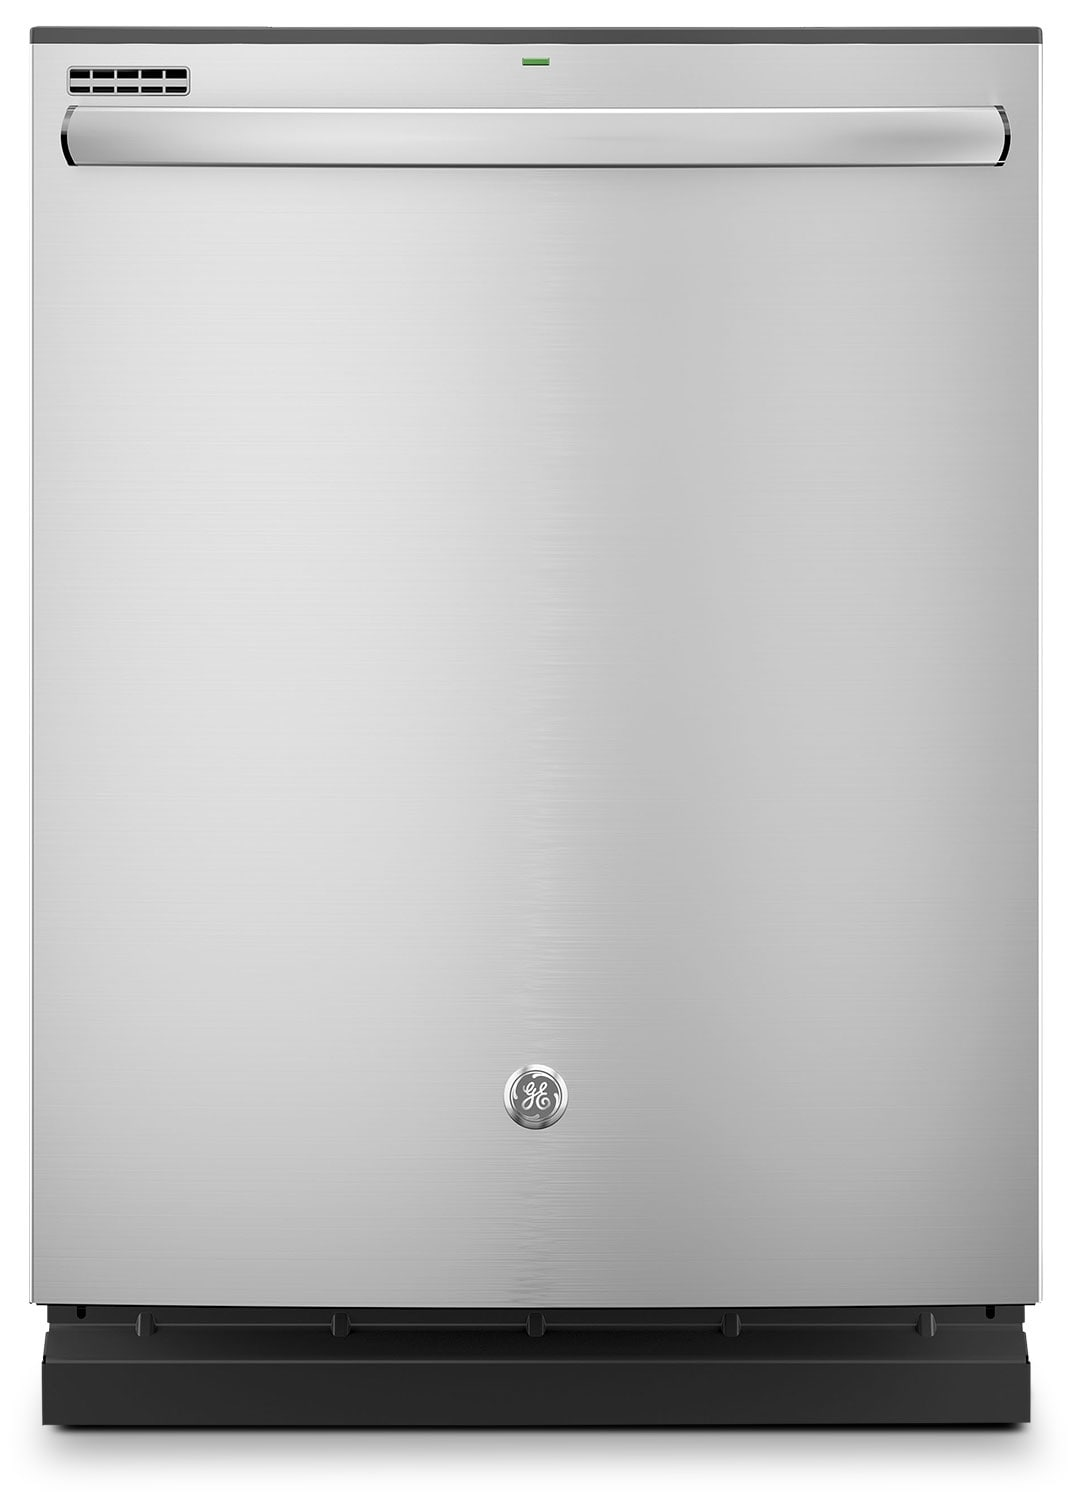 GE Built-in Tall Tub Dishwasher with Hidden Controls – Stainless Steel